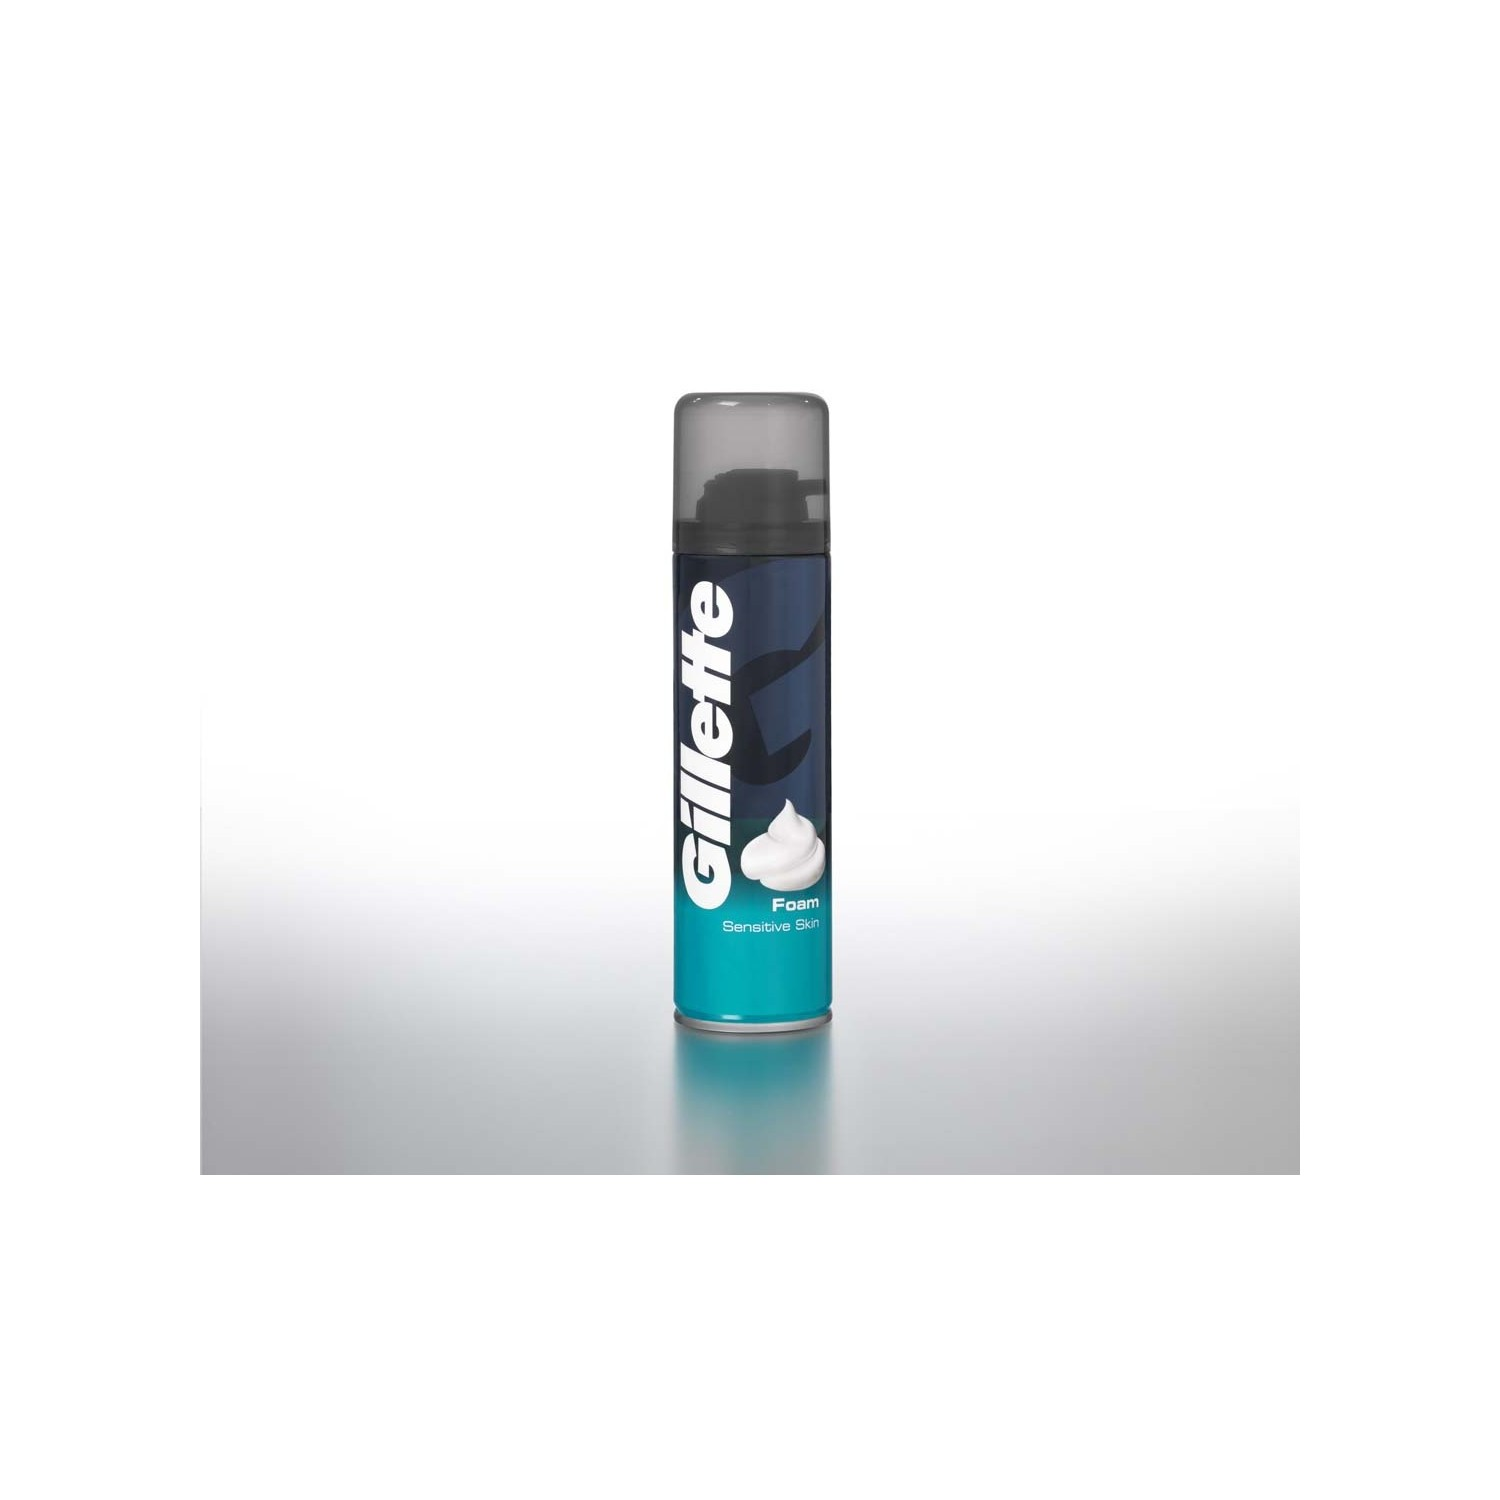 Gillette espuma pieles sensibles de 20cl. en spray